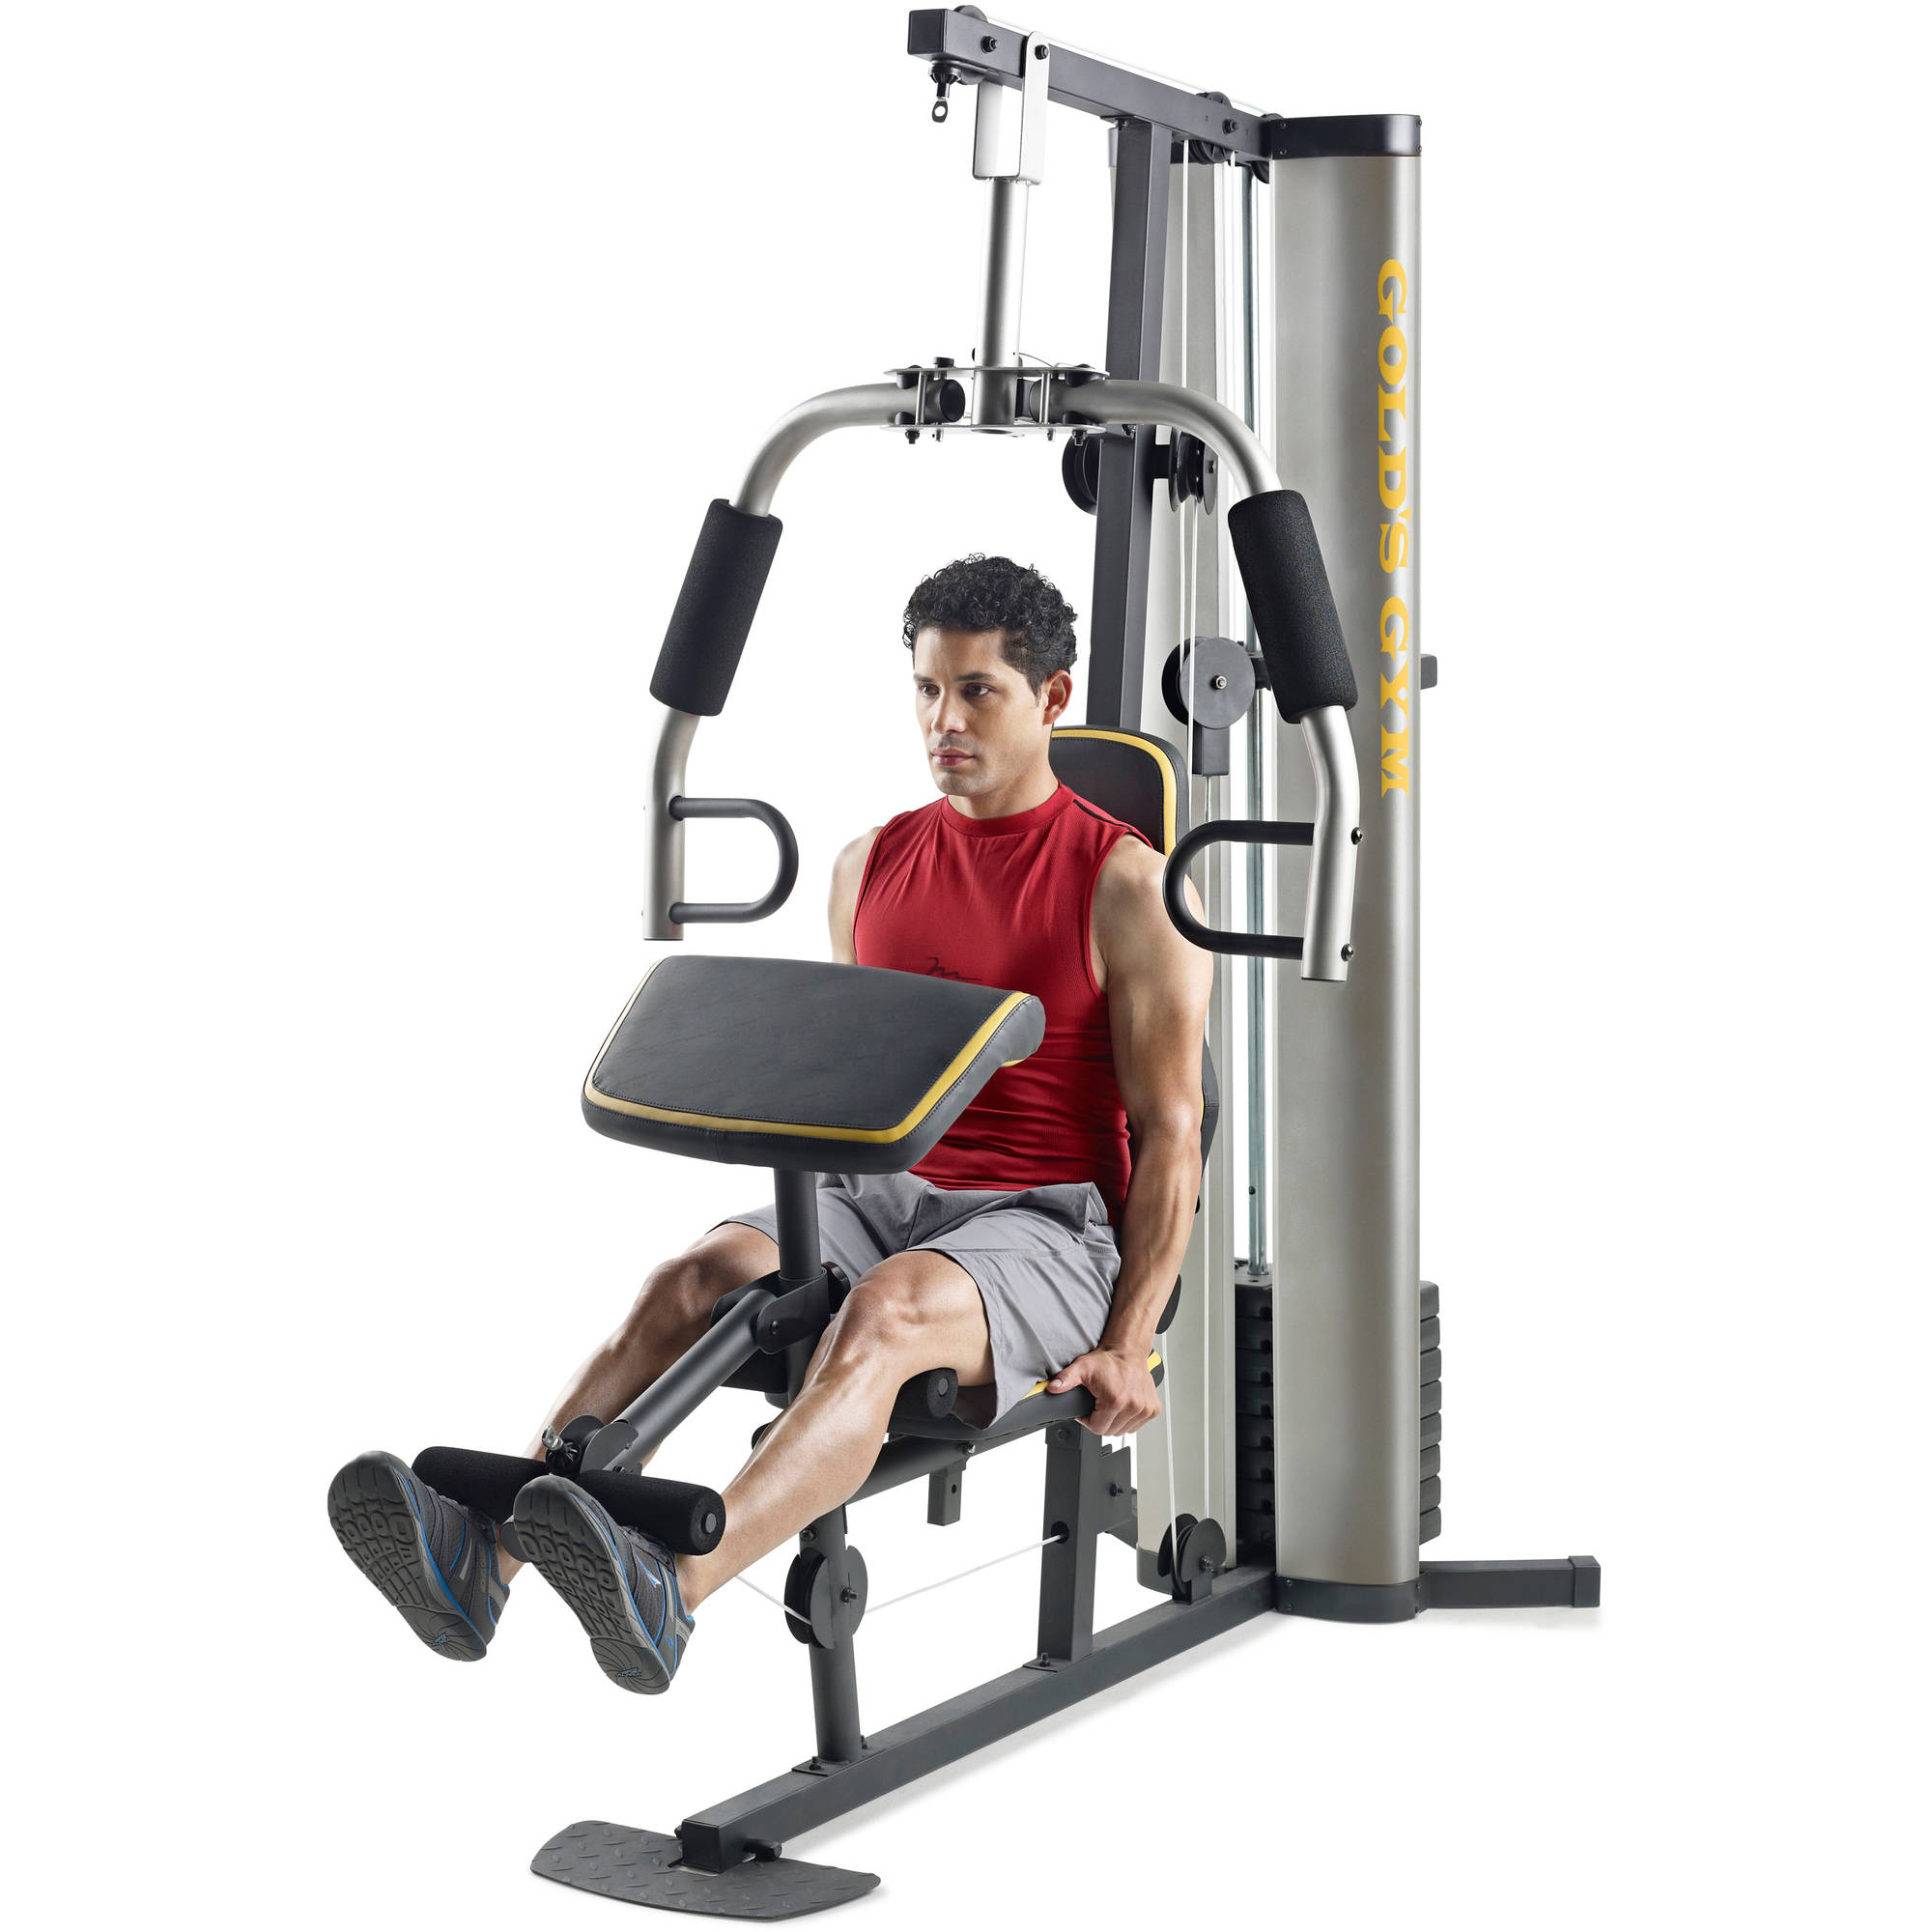 Golds Gym Treadmill Not Working: Weight Machine Home Gym Equipment Arm Workout Leg Fly